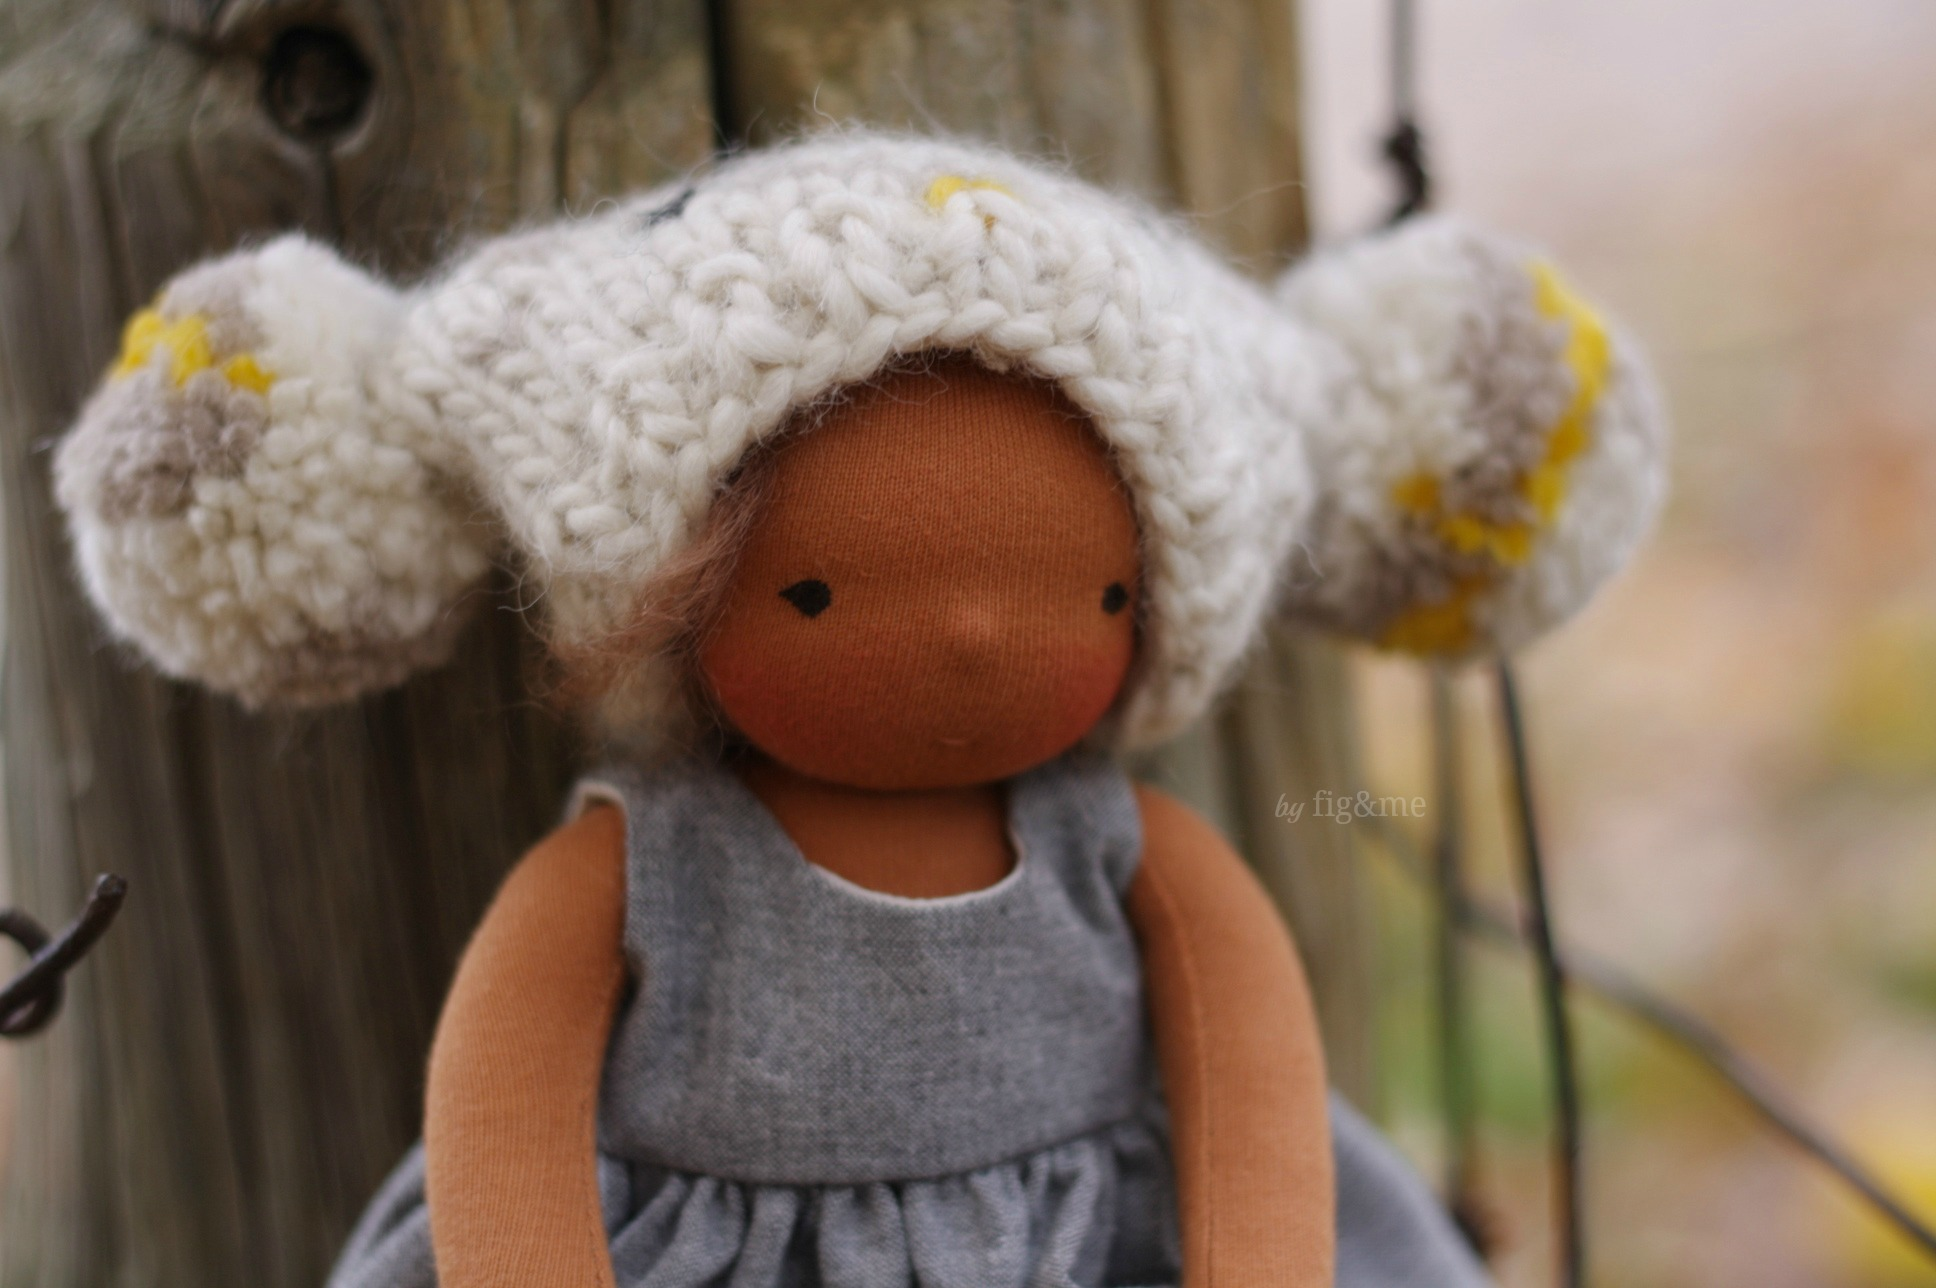 Little Reja and her wooly hat.